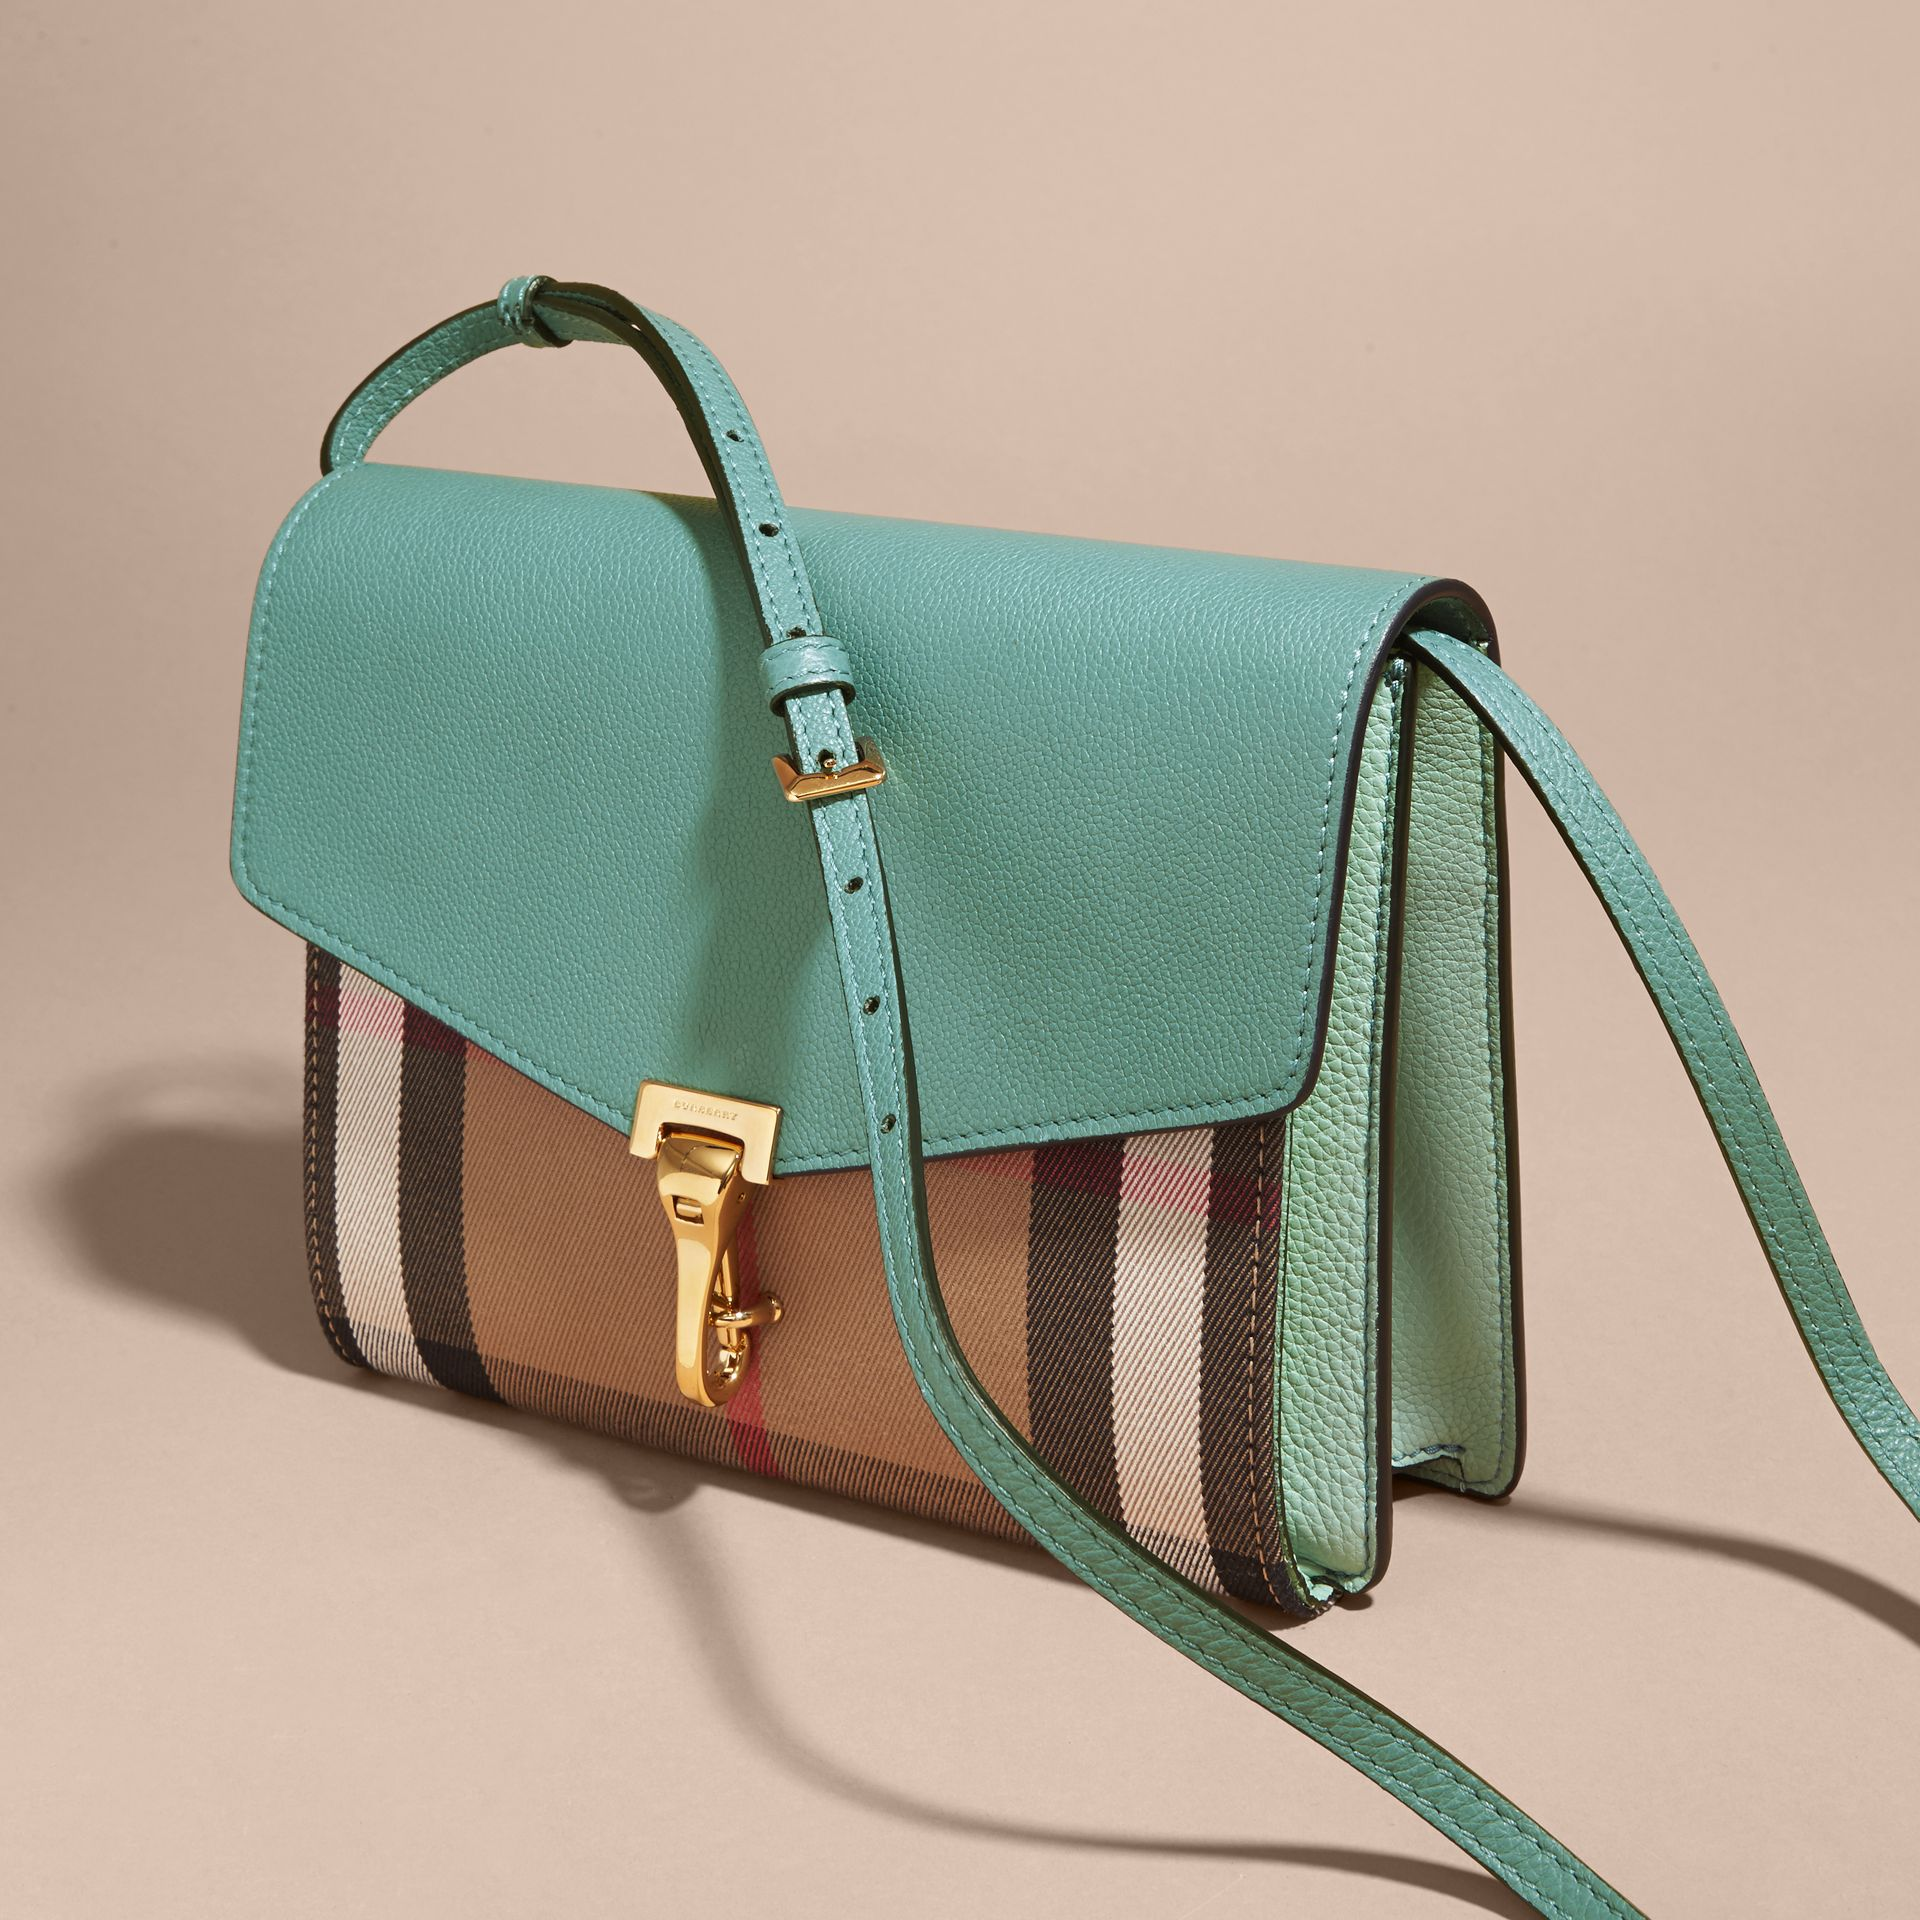 Celadon blue Small Leather and House Check Crossbody Bag Celadon Blue - gallery image 6